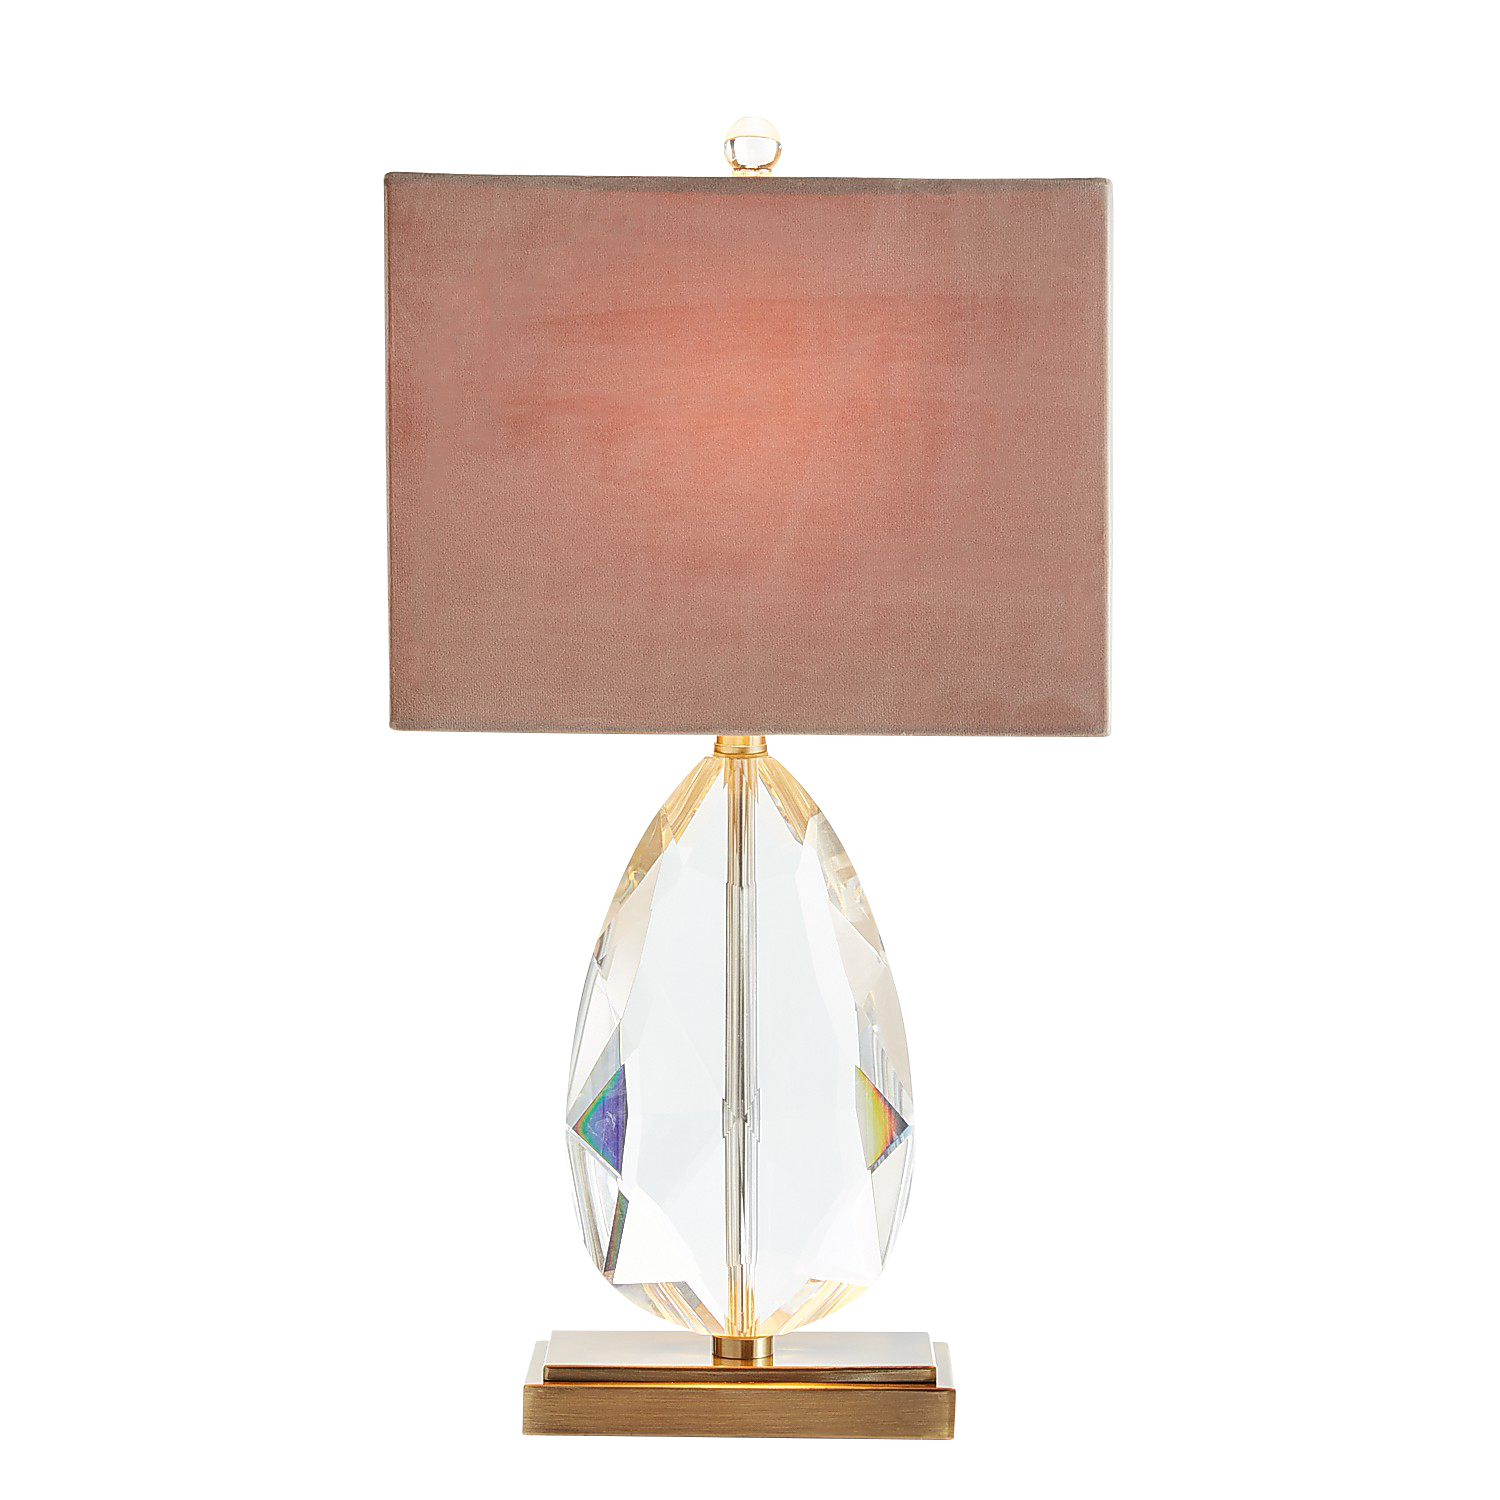 Grand Crystal Table Lamp with Velvet Shade